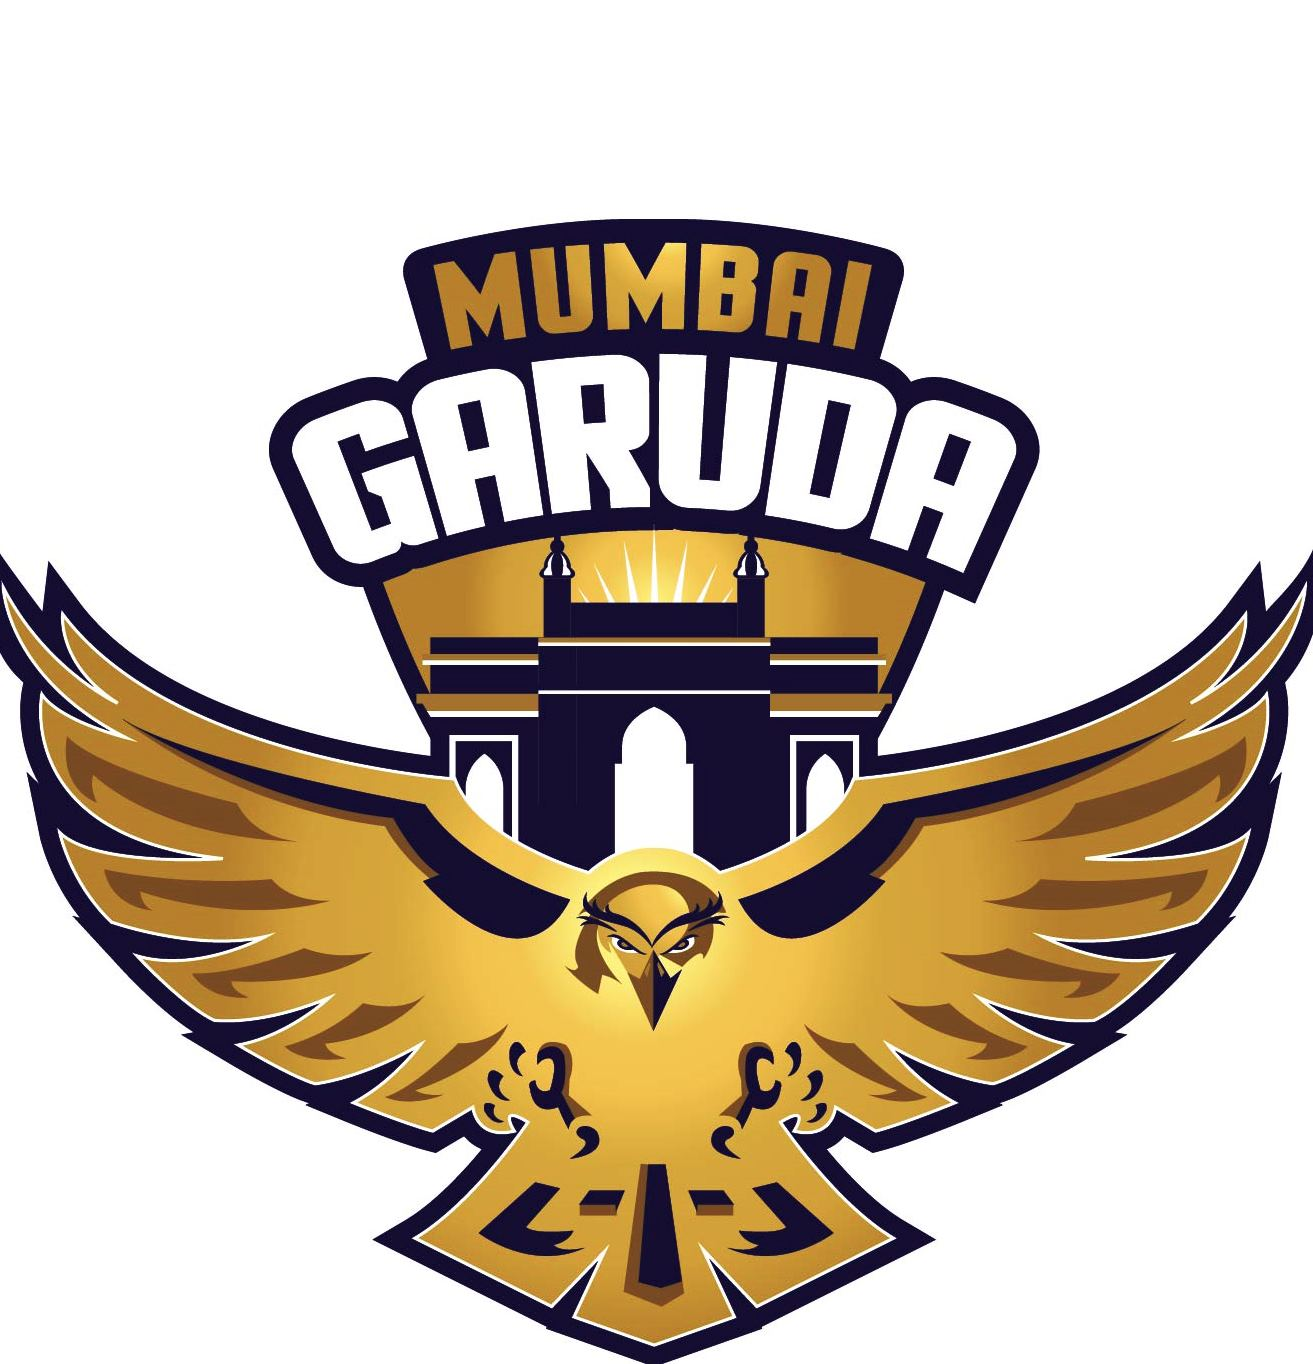 Clipart silvostyle png black and white Mumbai Garuda to represent City in inaugural Triple World Champion png black and white